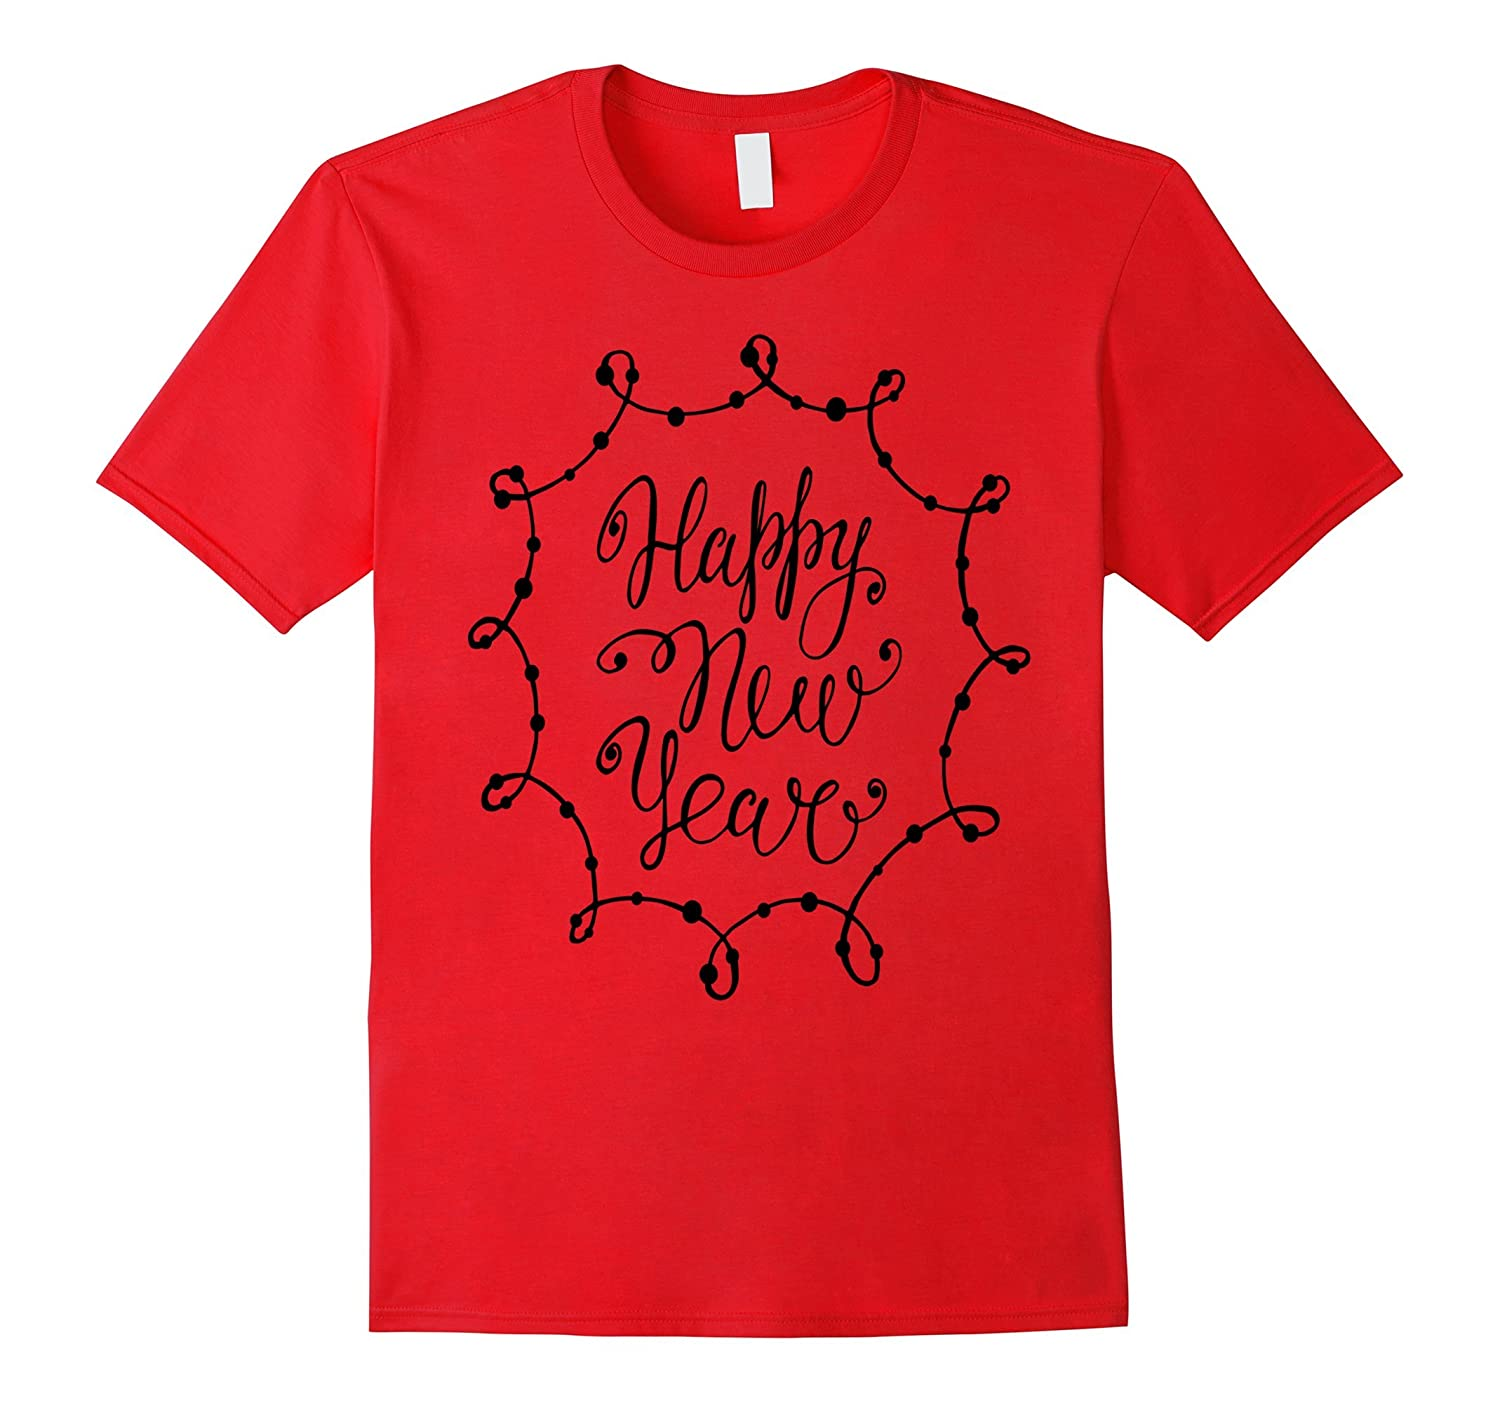 Happy New Year Shirt Simple Trendy Script Party Holiday-CL